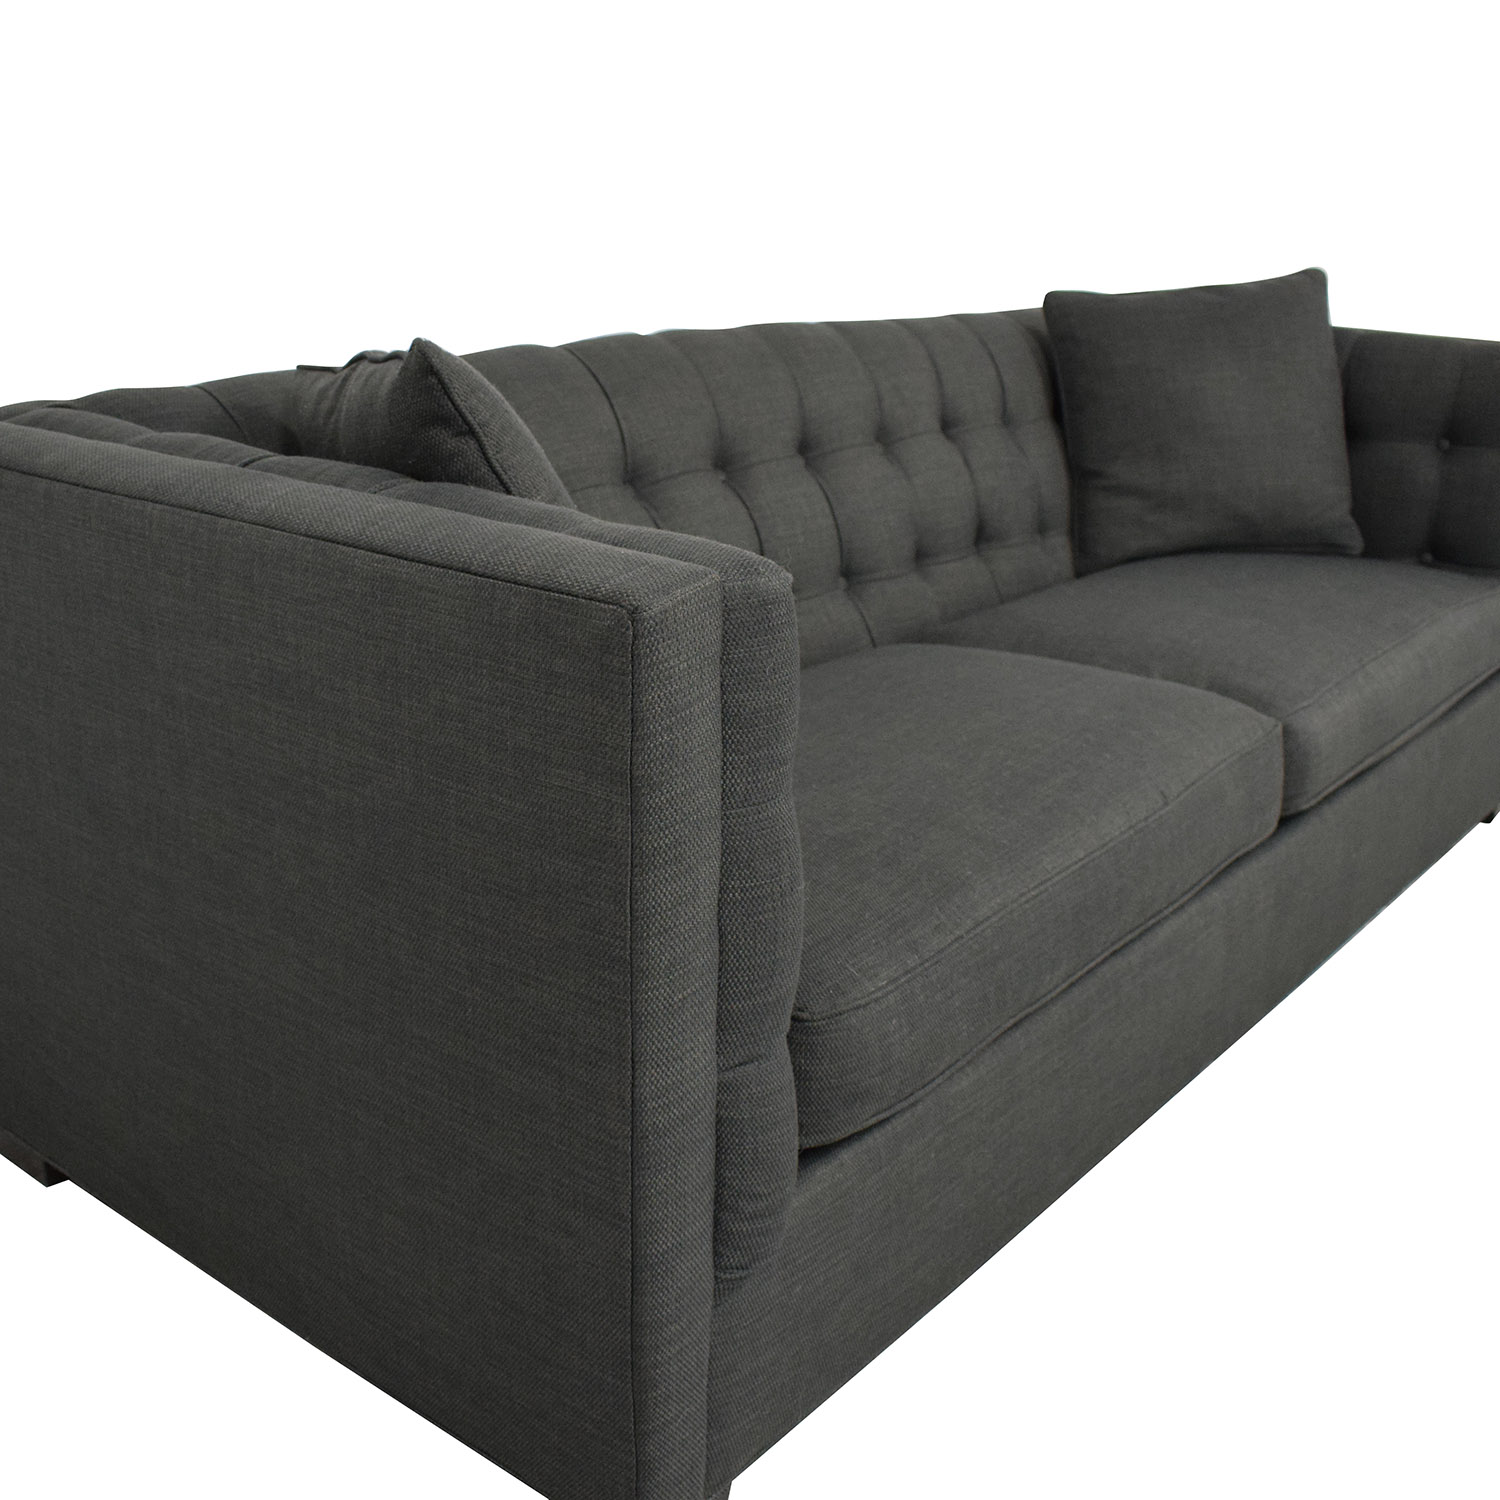 Raymour & Flanigan Raymour & Flanigan Tufted Tuxedo Sofa coupon